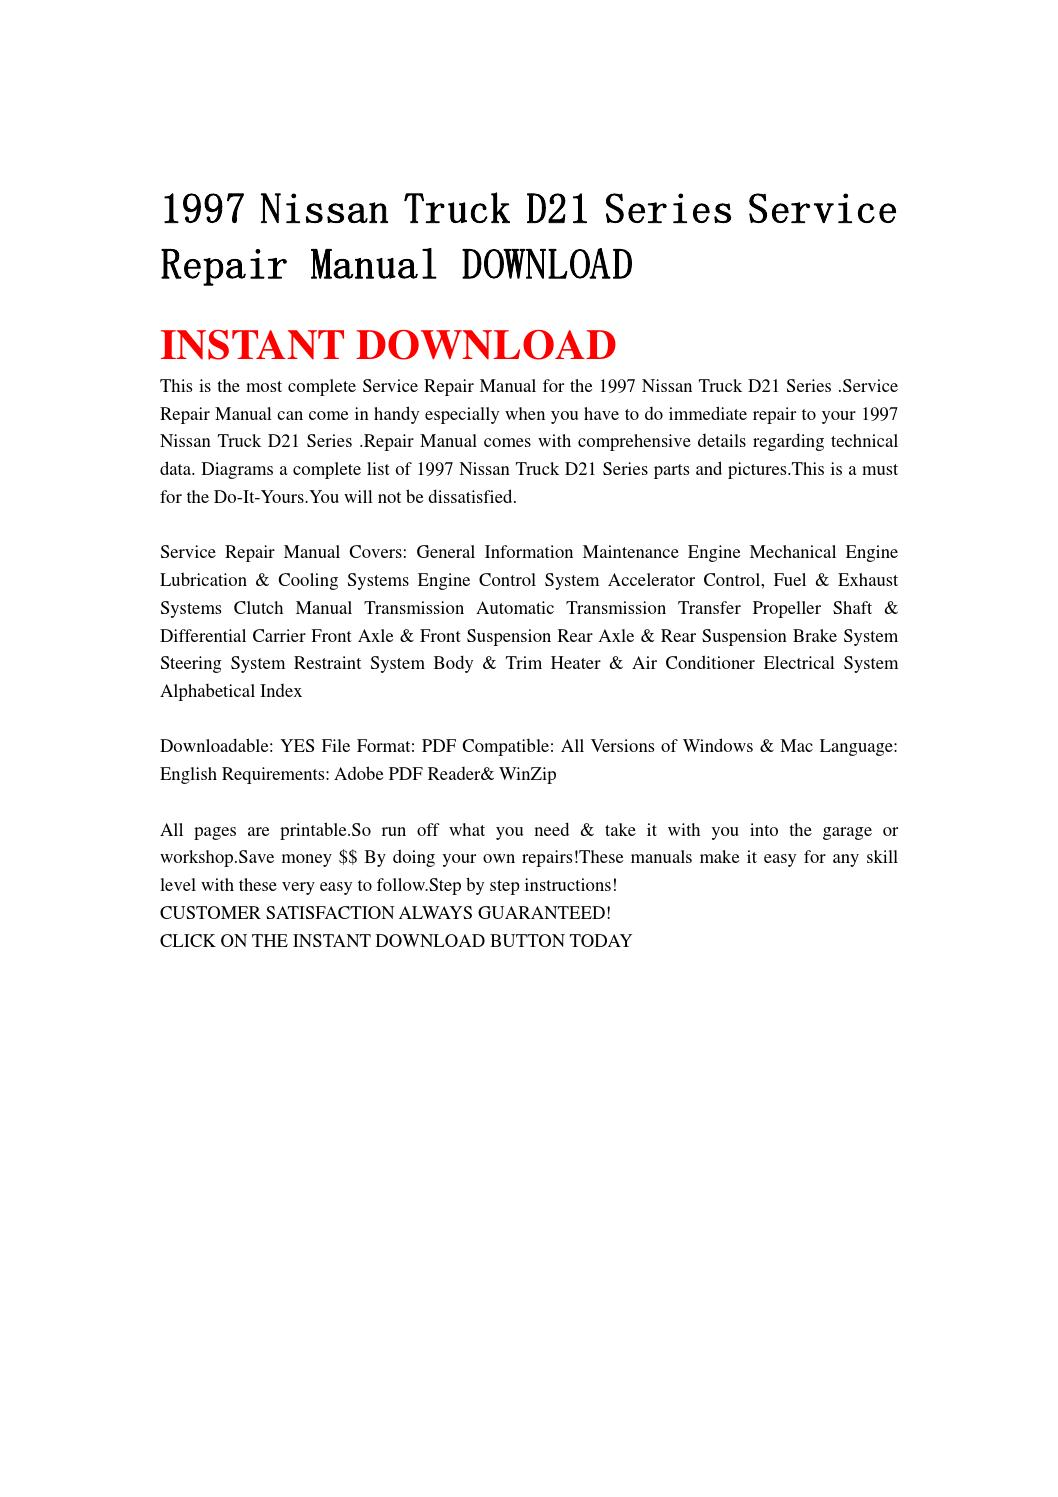 1997 nissan truck d21 series service repair manual download by jnshefjsne -  issuu